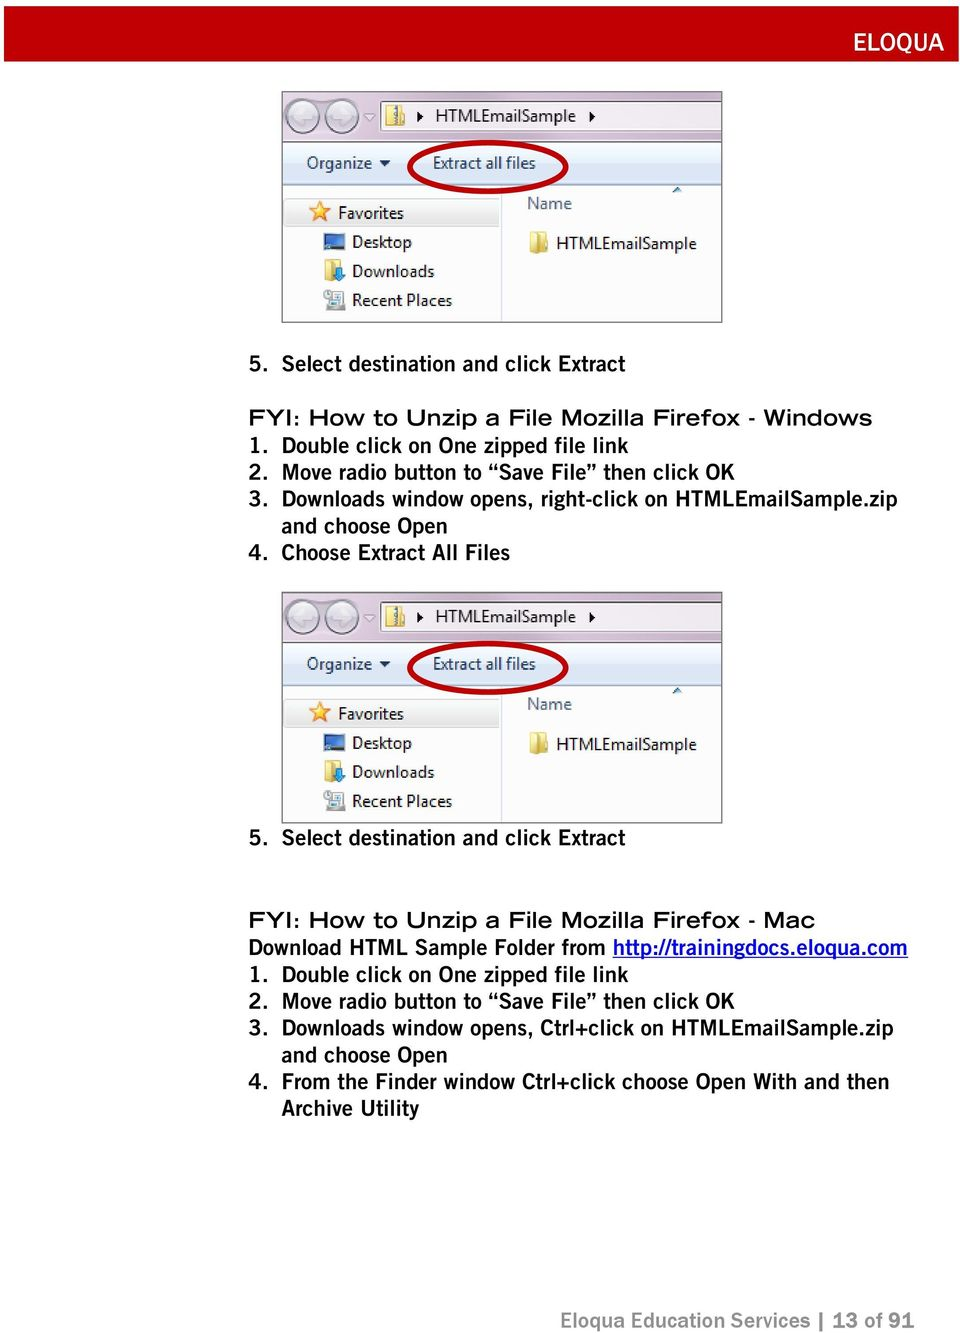 Select destination and click Extract FYI: How to Unzip a File Mozilla Firefox - Mac Download HTML Sample Folder from http://trainingdocs.eloqua.com 1.